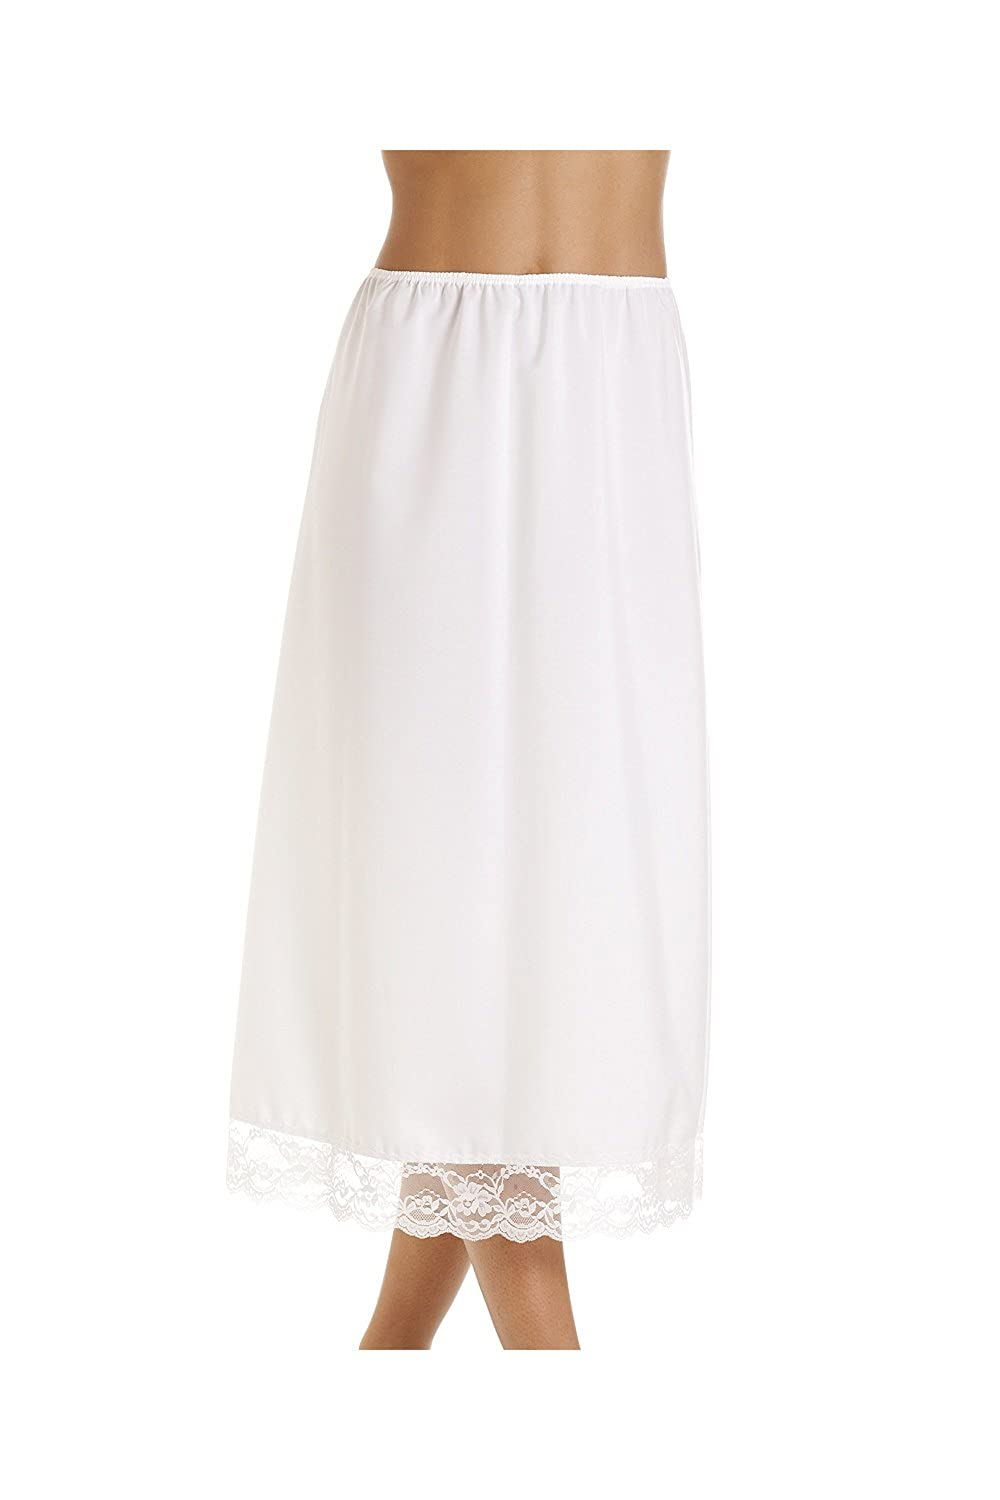 Camille Womens Ladies White 32'' Half Length Lace Trim Under Skirt Slip